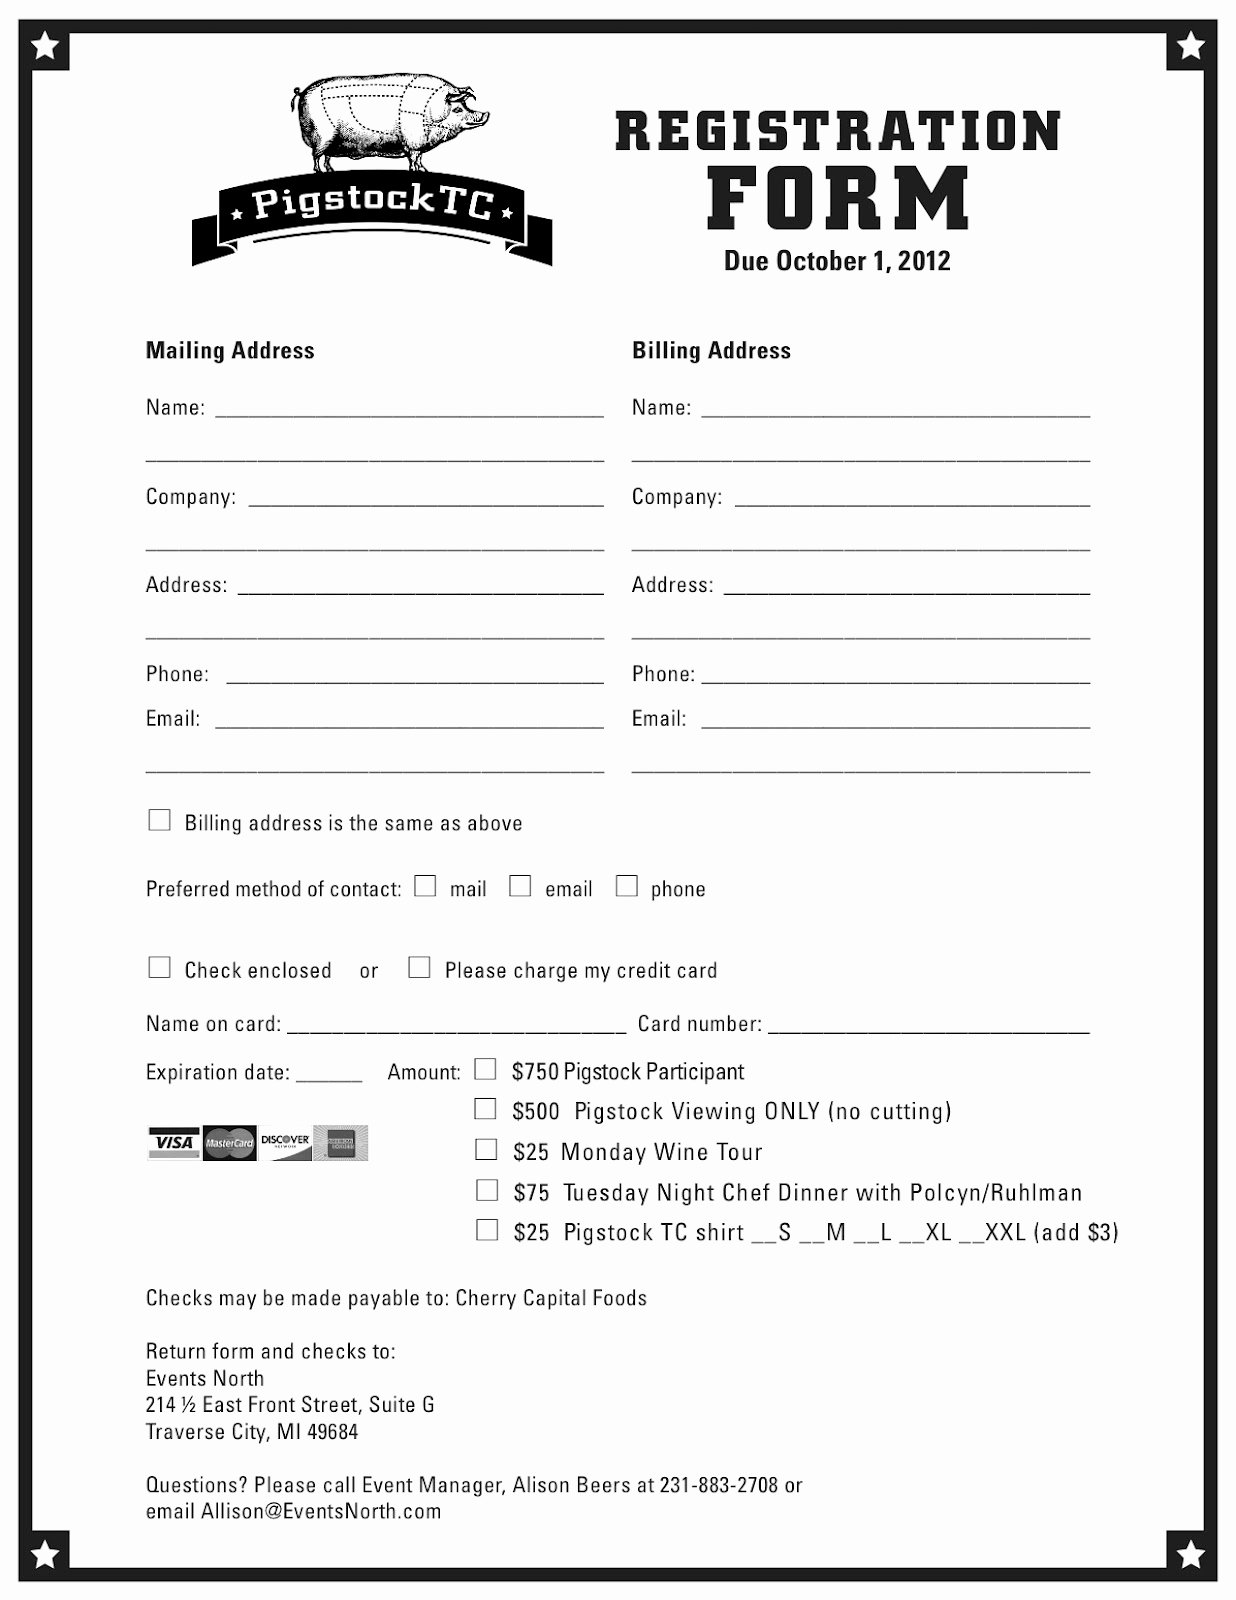 Baseball Registration form Template Awesome Pigstocktc 2012 Pigstocktc Program Schedule & Registration